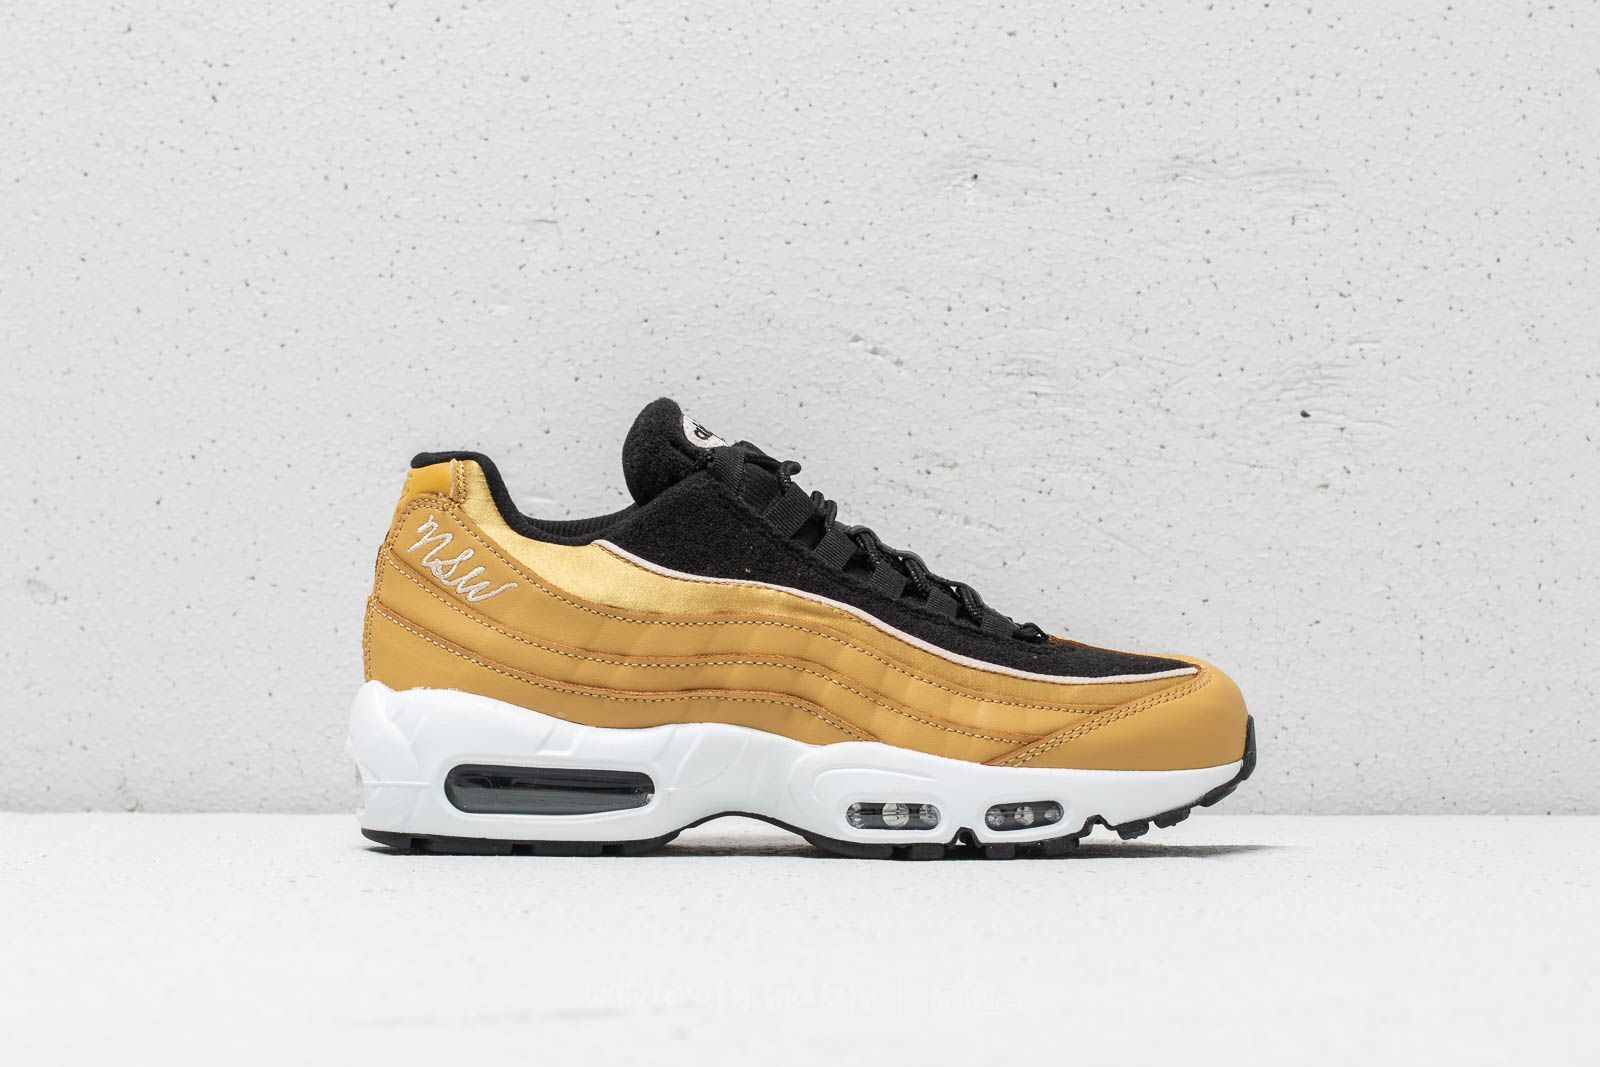 new products 562ce 267cb Nike WMNS Air Max 95 LX Wheat Gold Wheat Gold-Black at a great